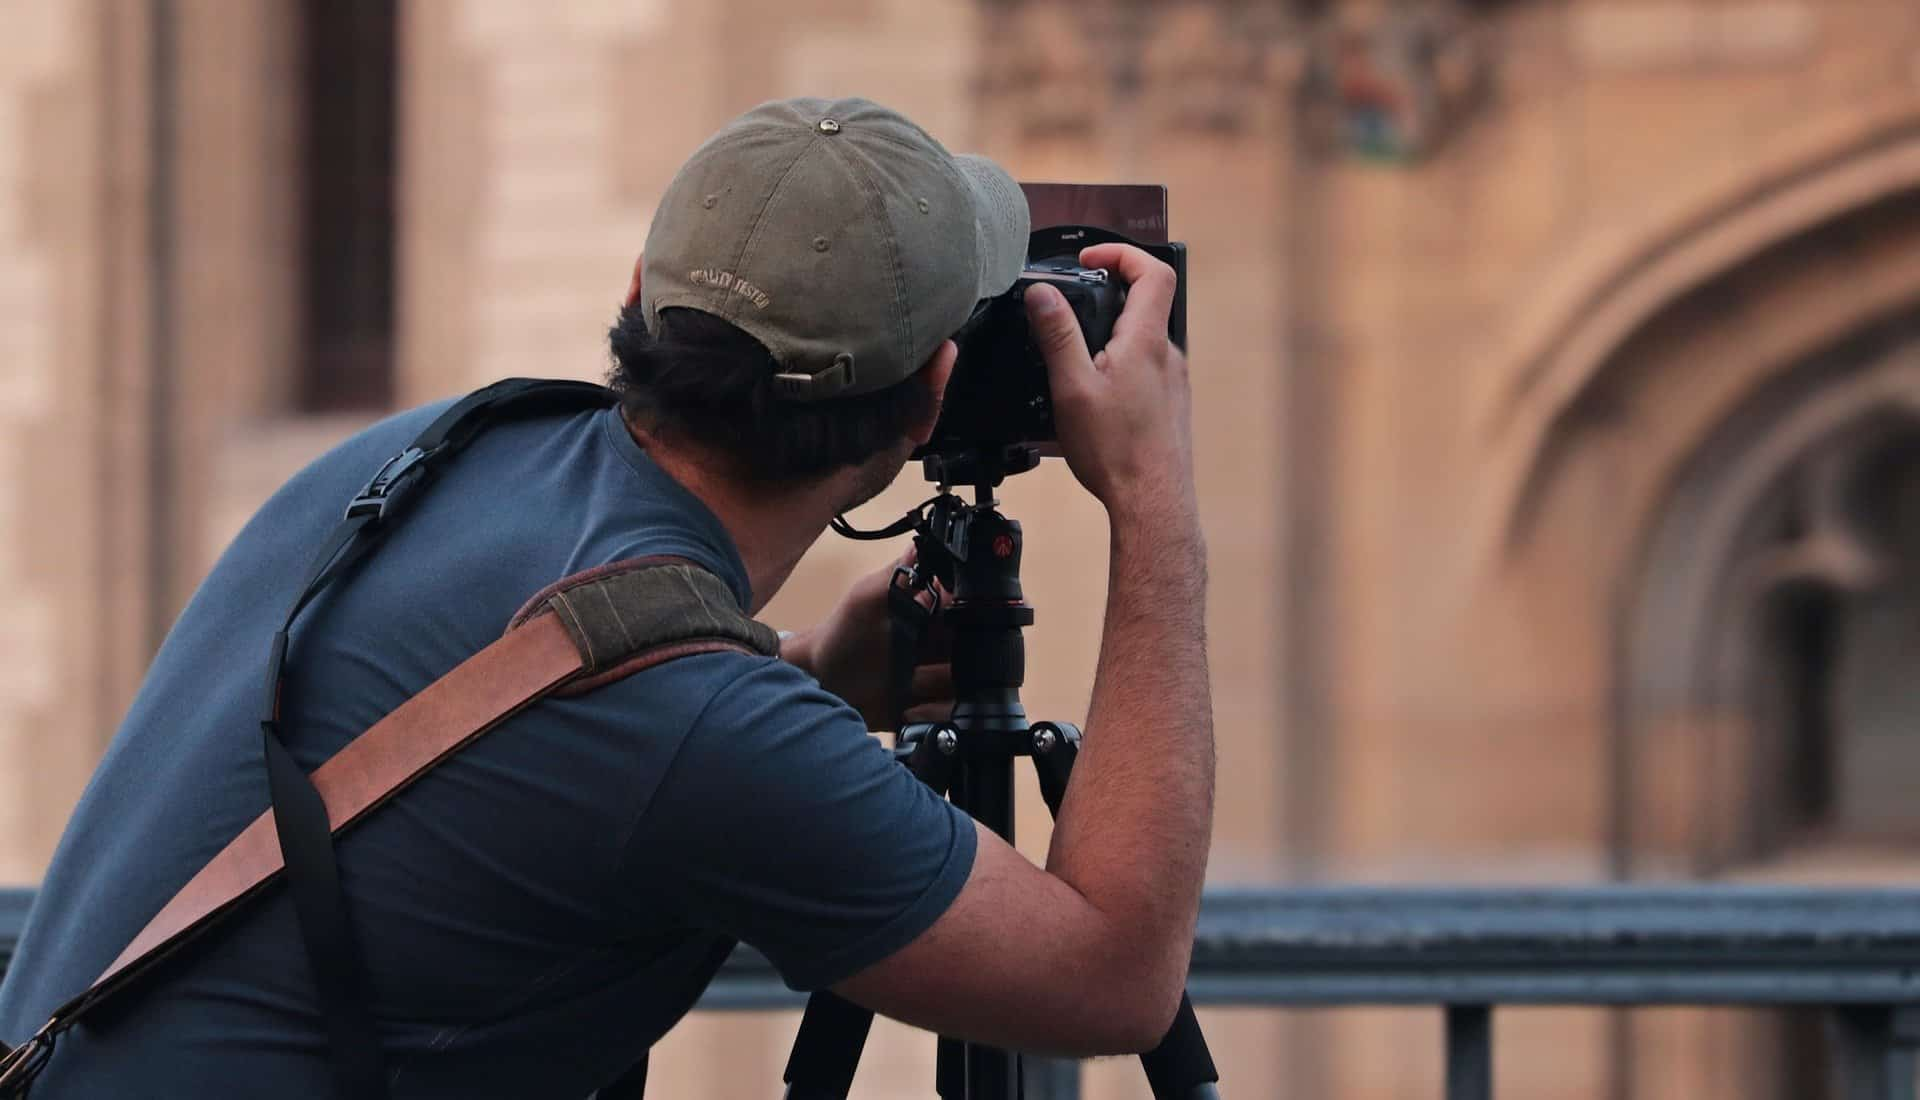 Abstract Photography Tips